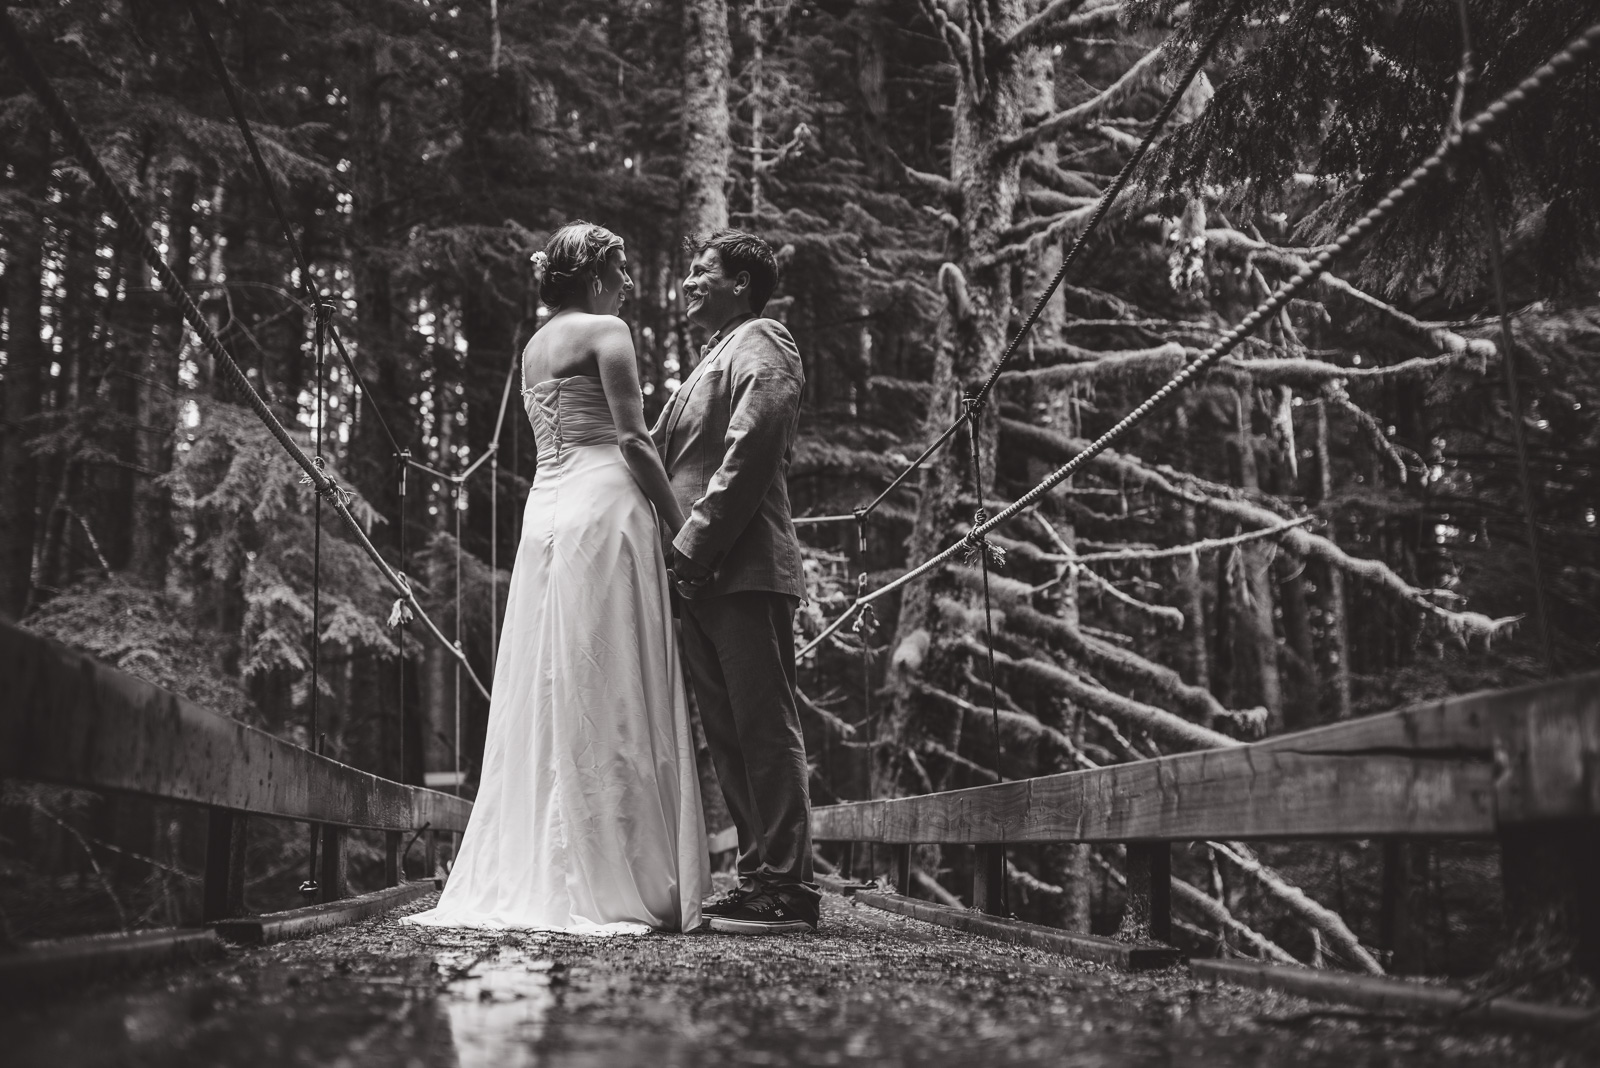 bc-wedding-photographers-kitimat-minette-bay-lodge-wedding-28.jpg